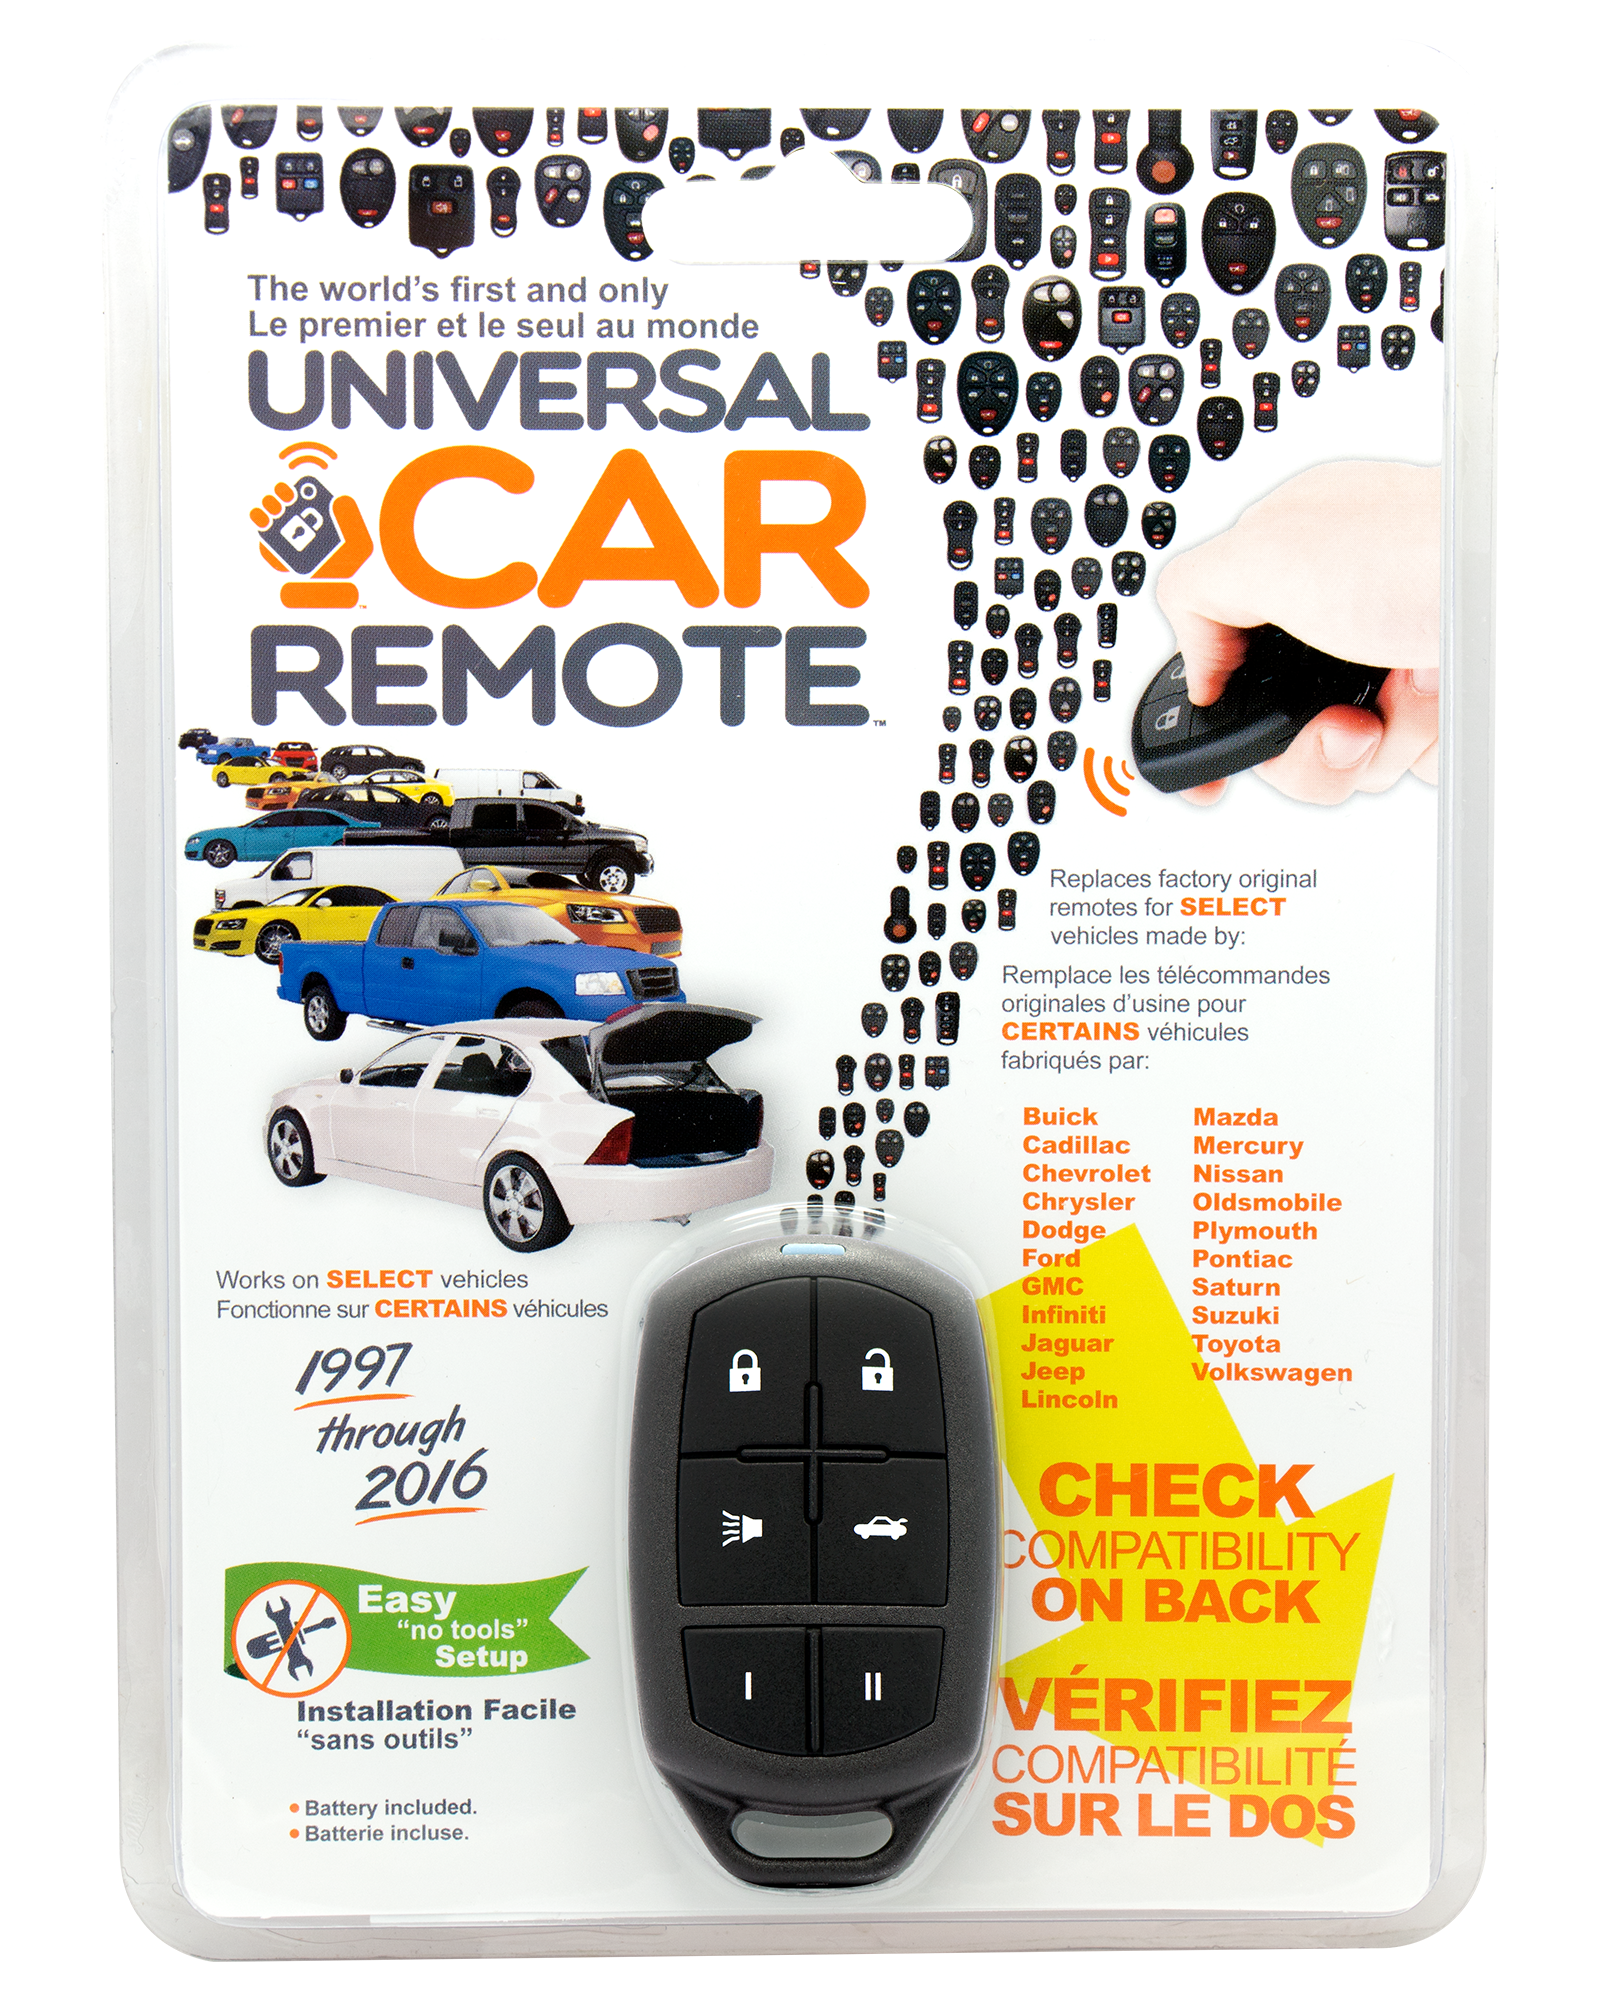 The Universal Car Remote